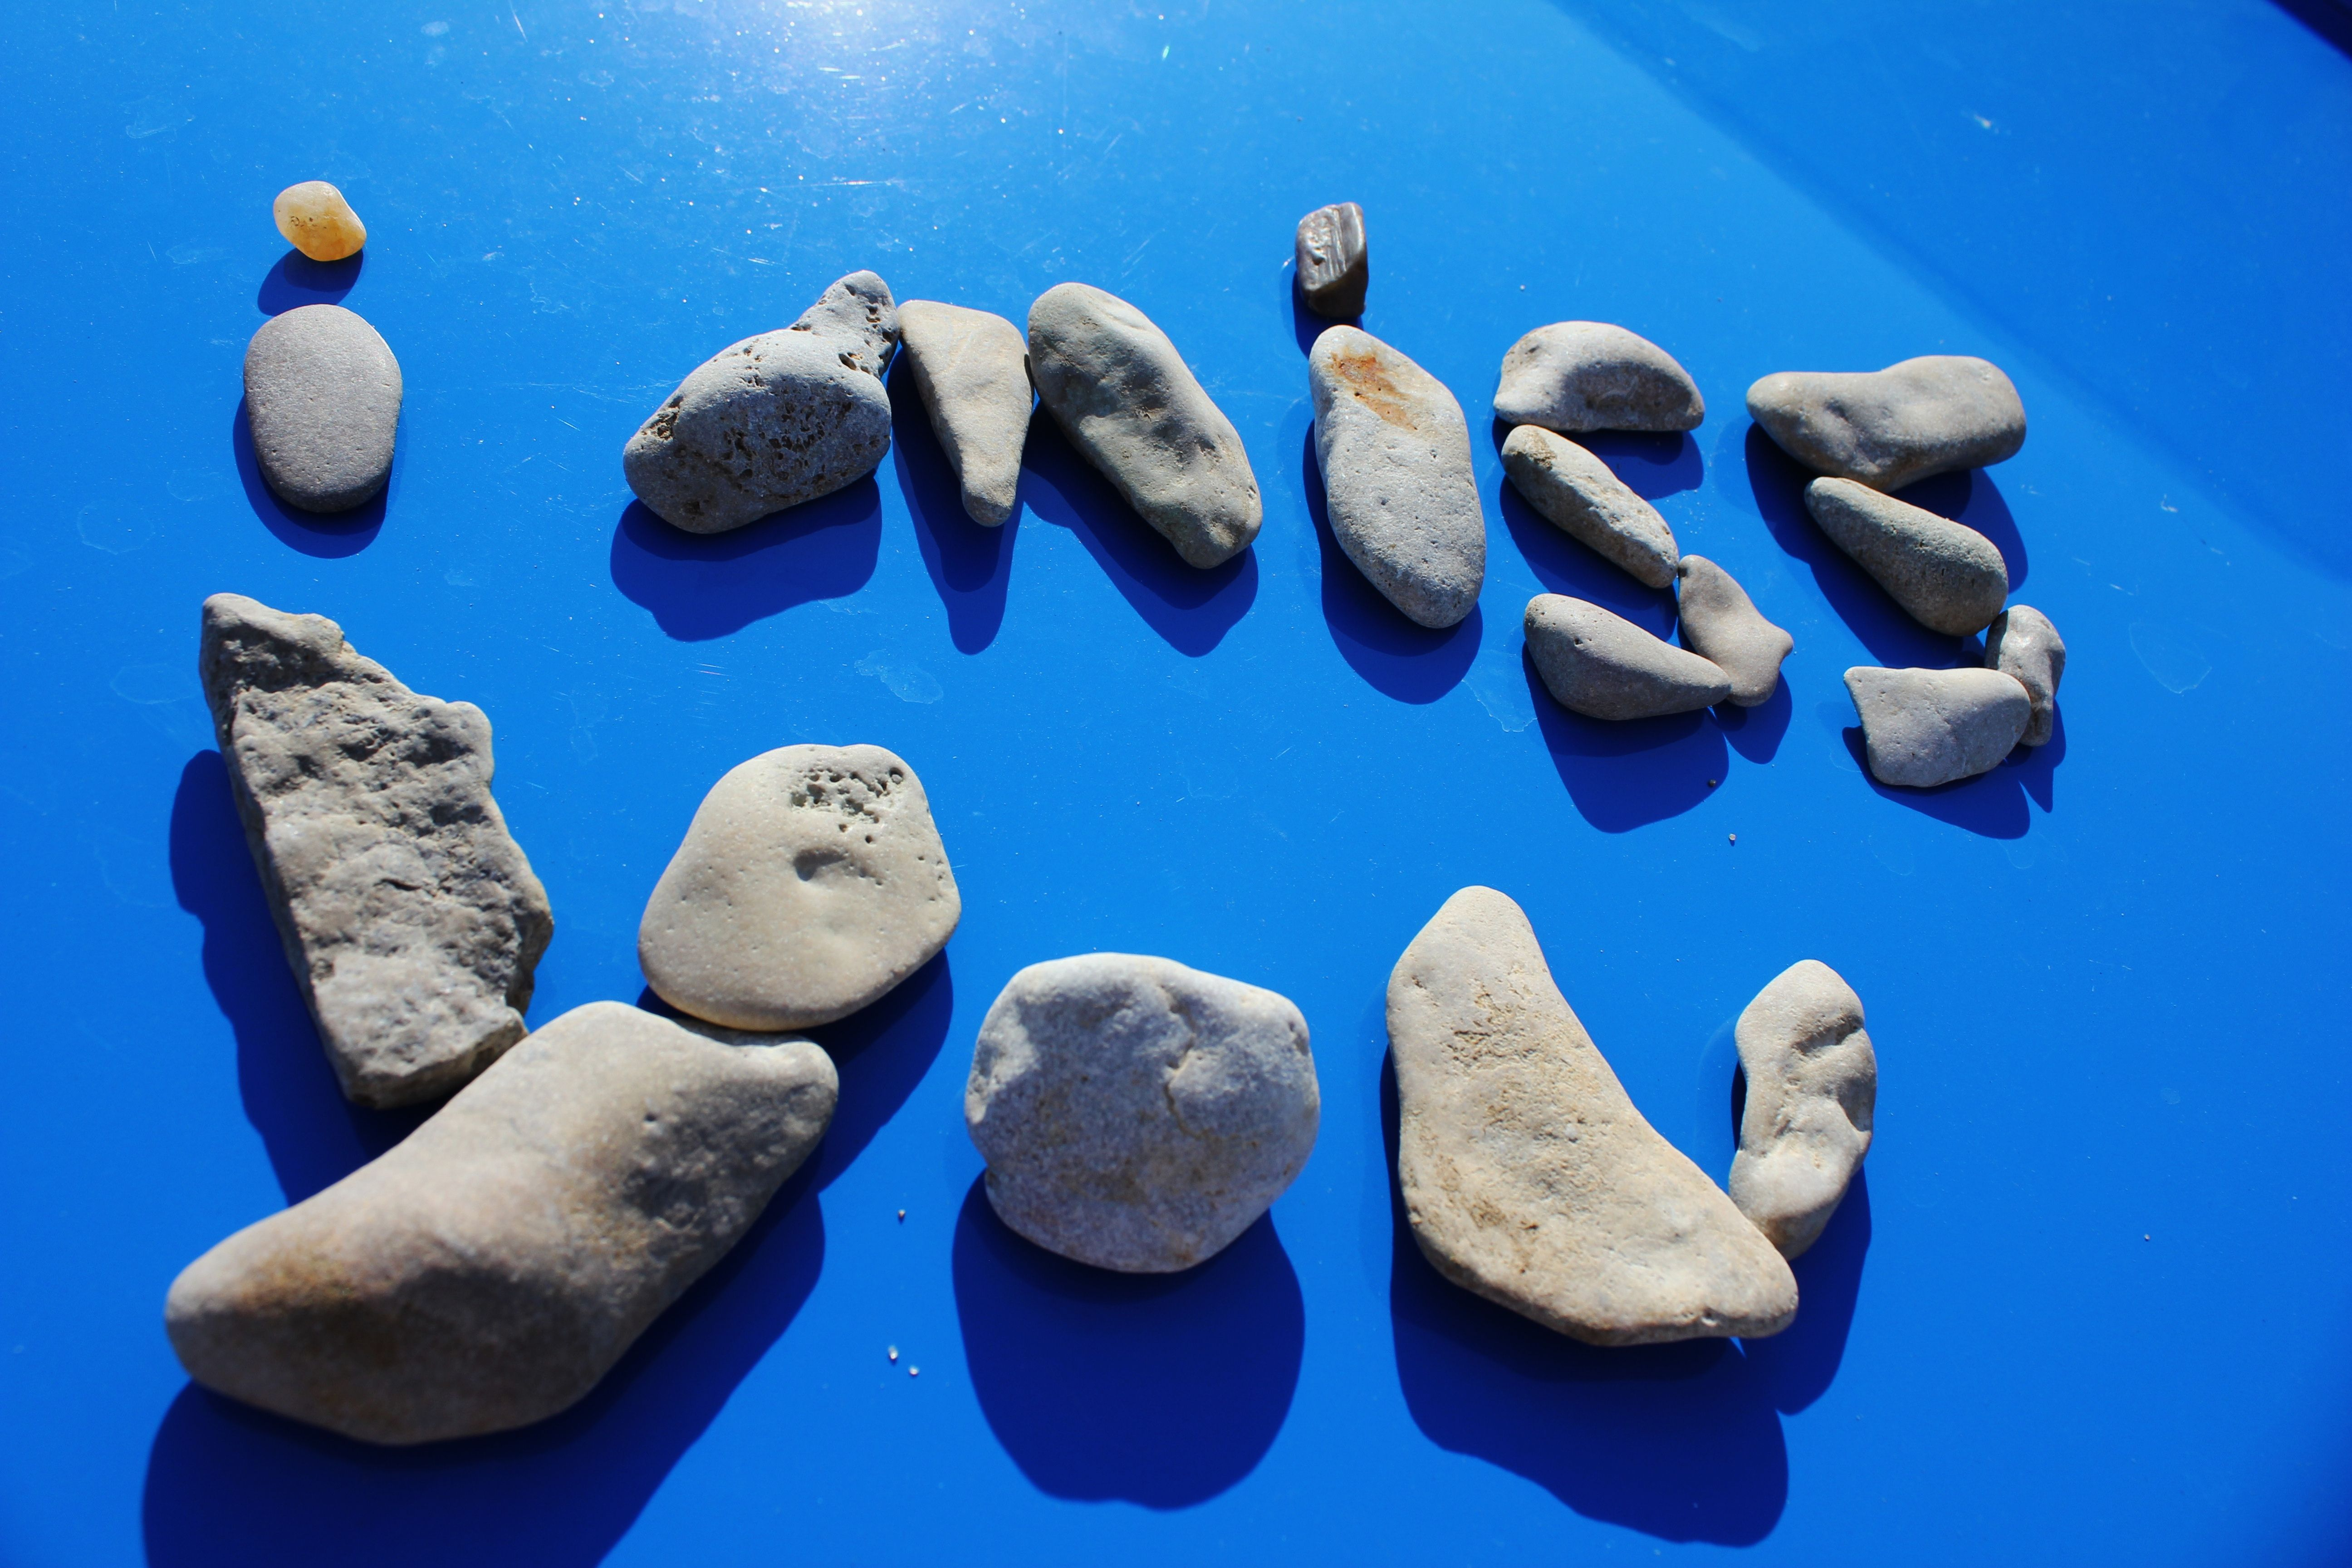 i <15 taking pix of words i spell out with rocks, sticks, flower